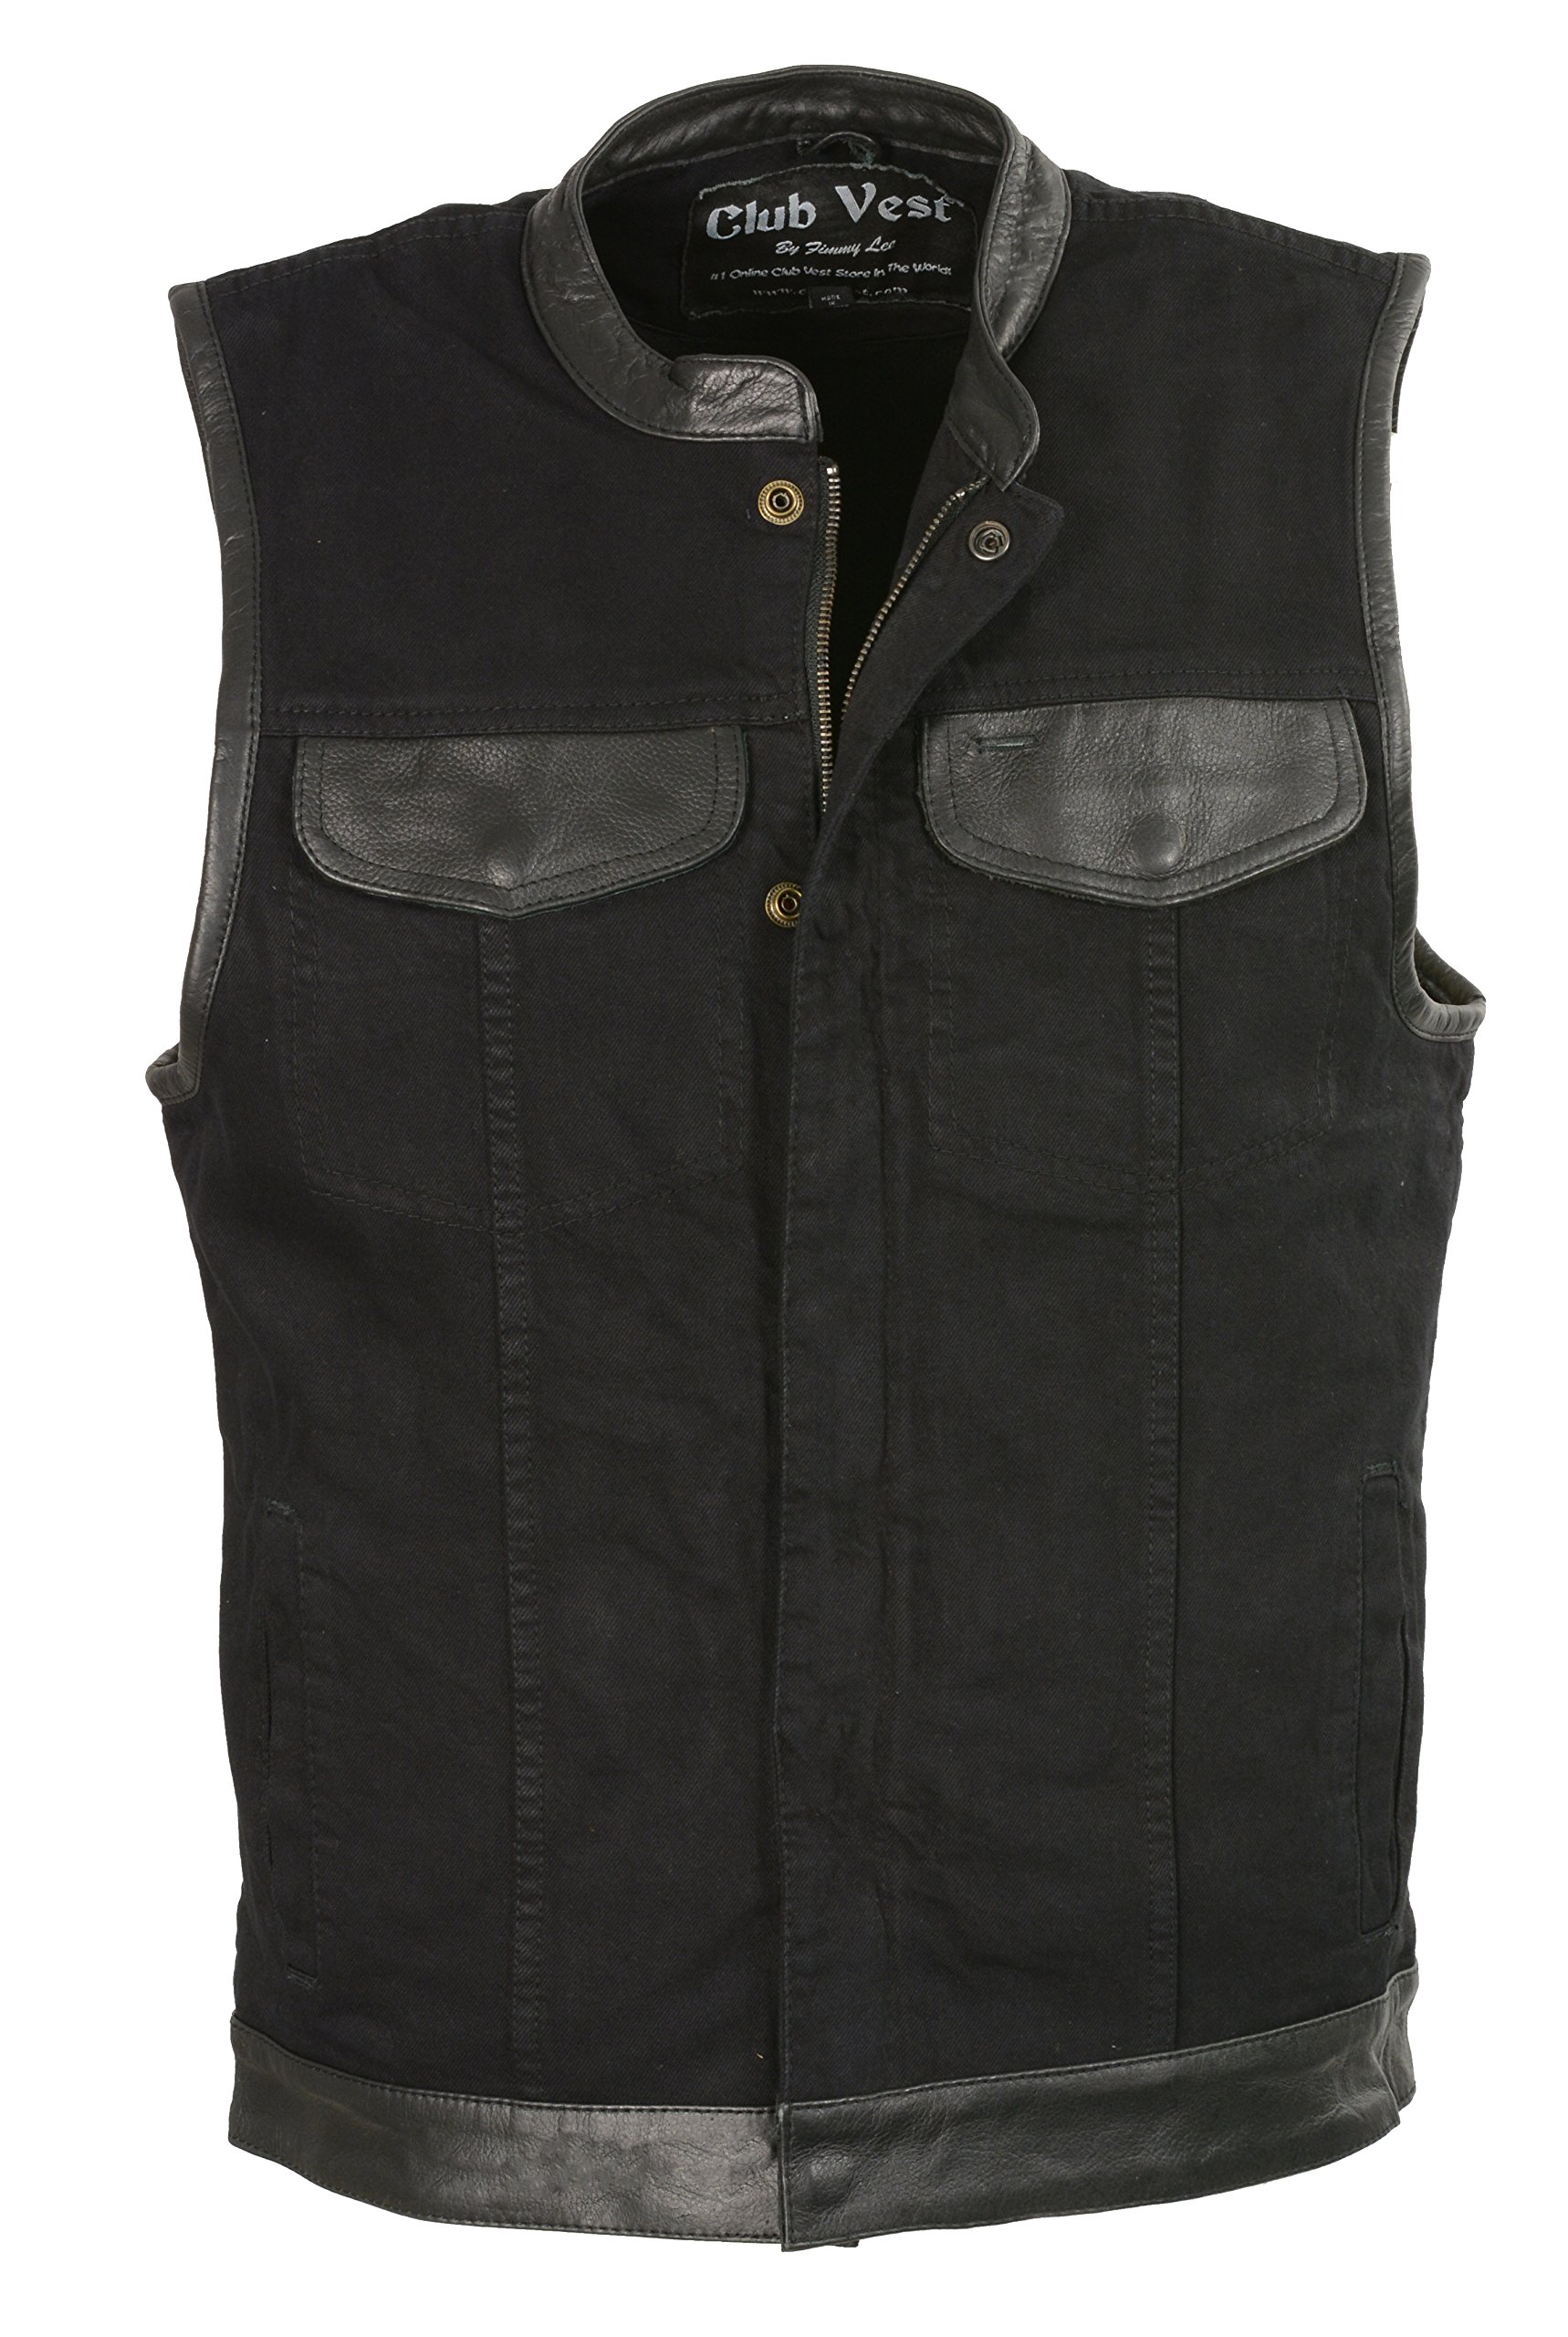 Club Vest Men's Denim Club Vest w/ Leather Trim & Hidden Zipper (Black, 3X), 1 Pack